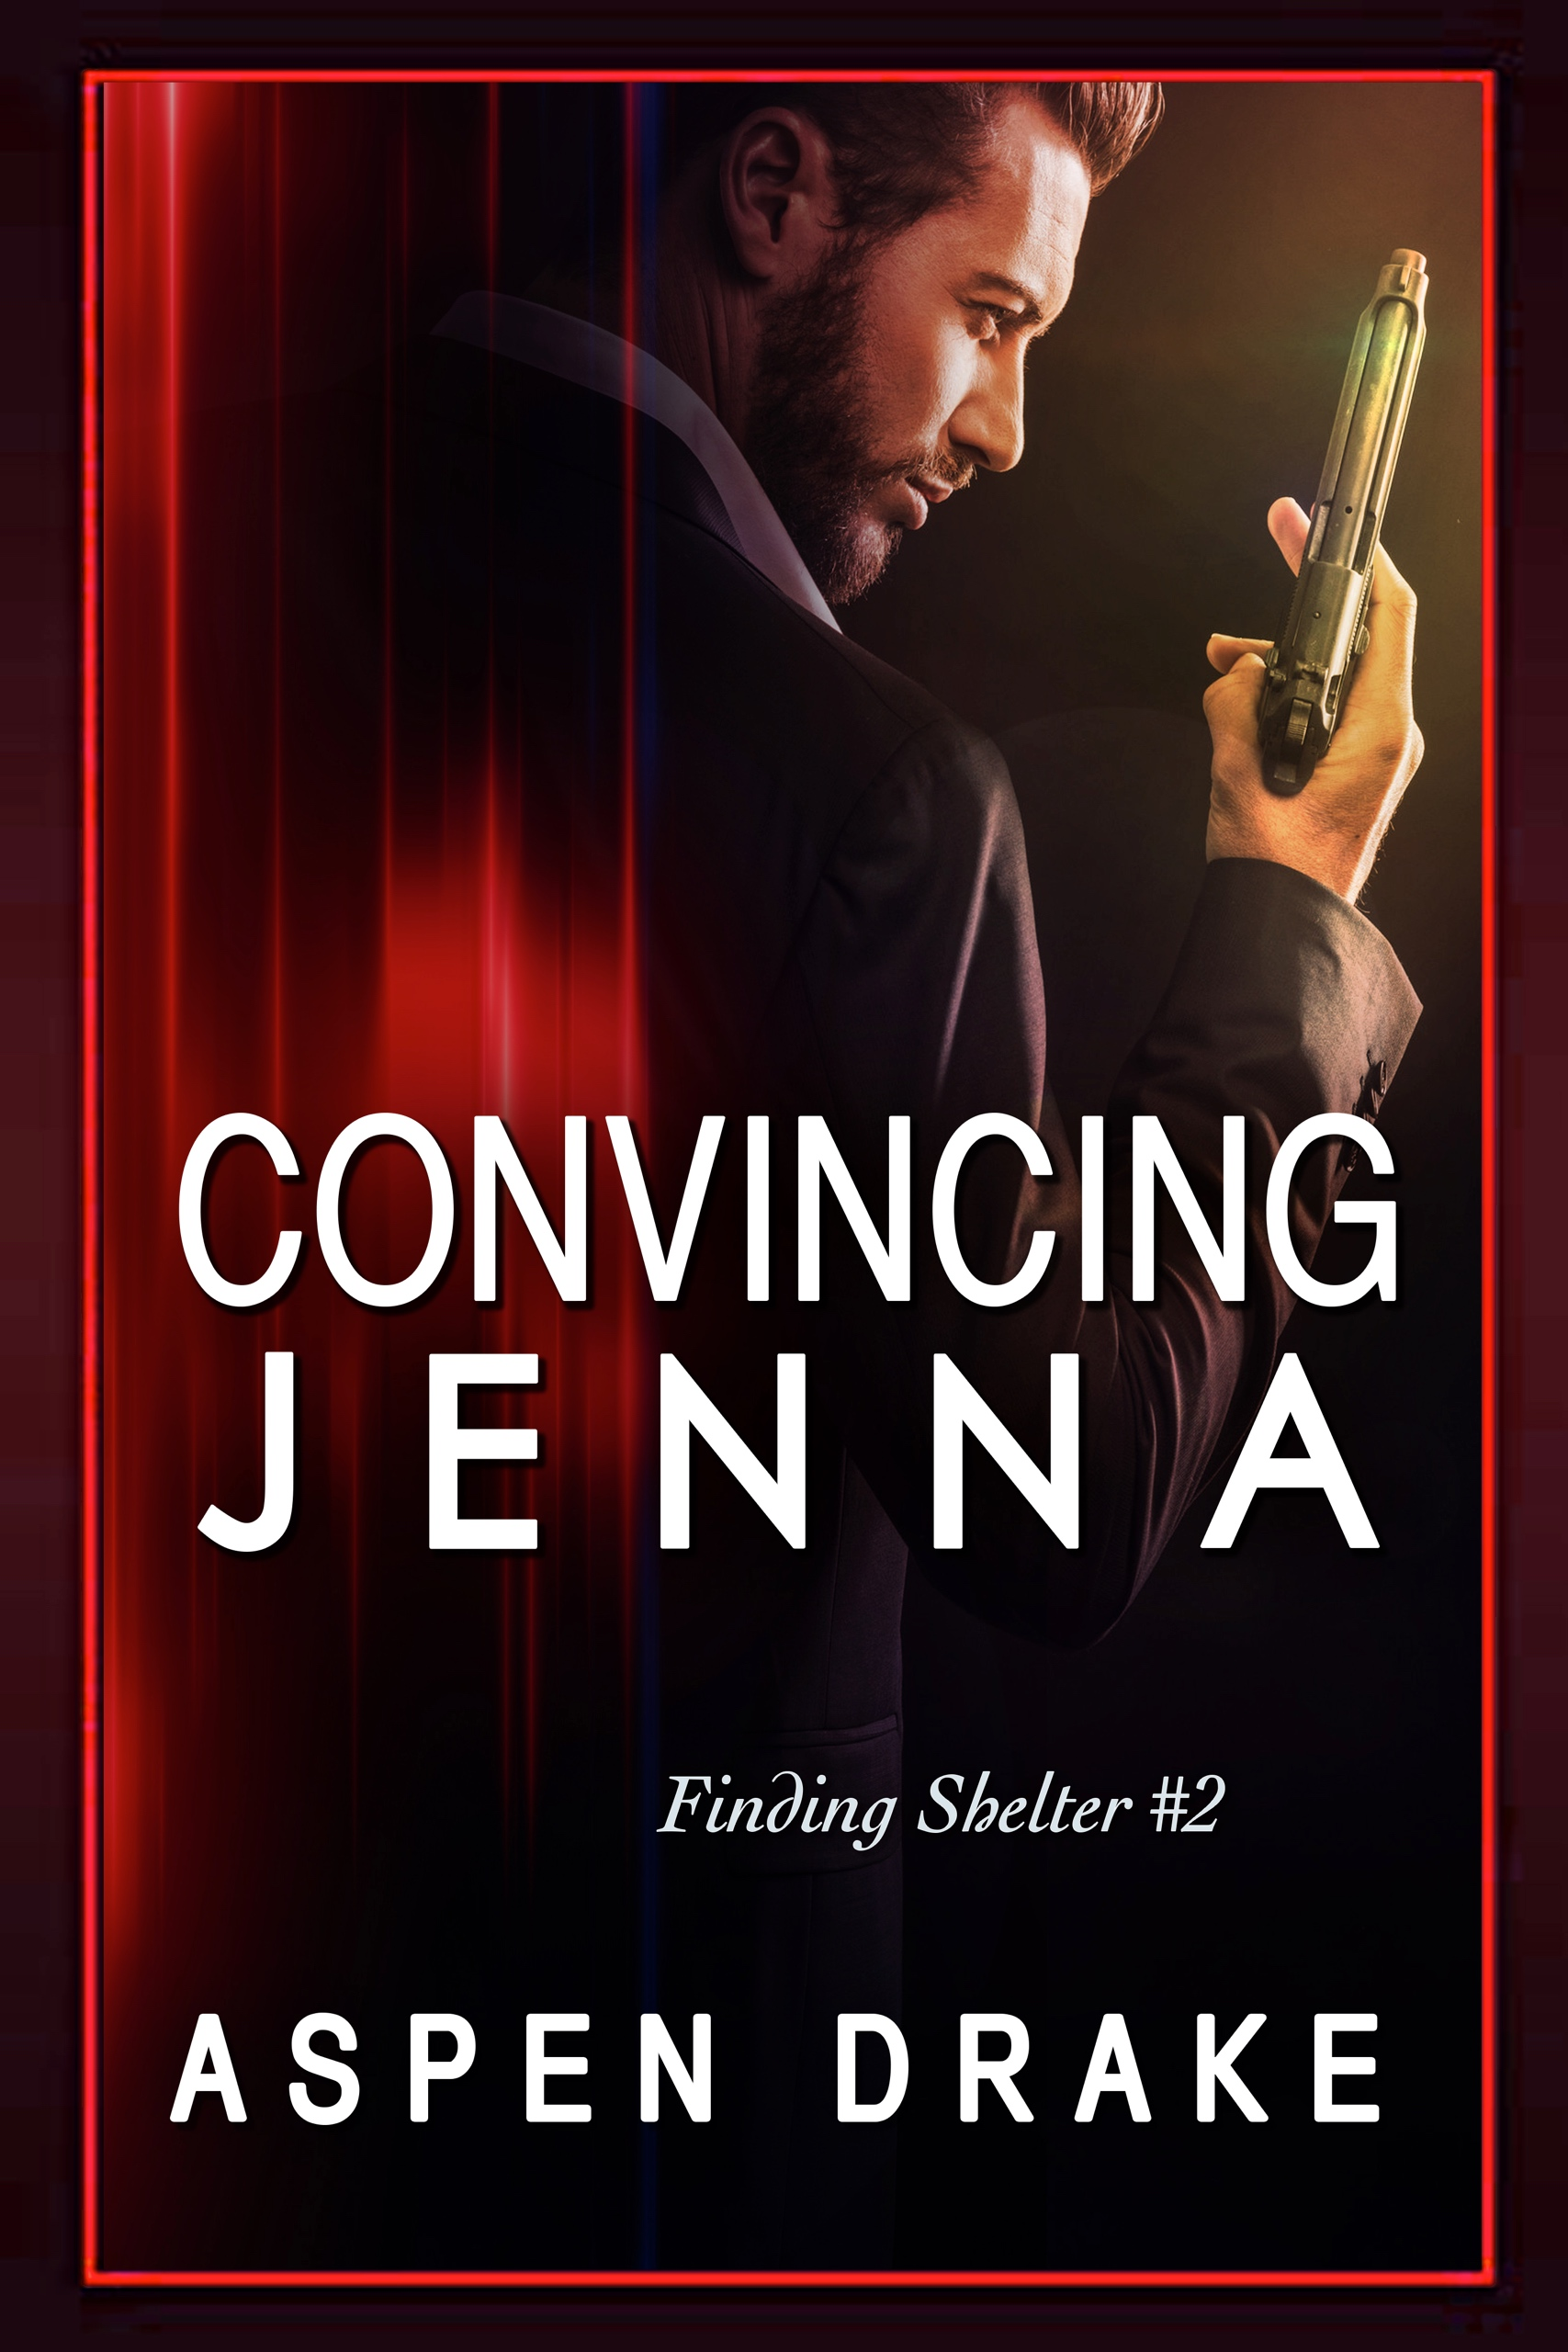 Convincing jenna - not accepting new offers